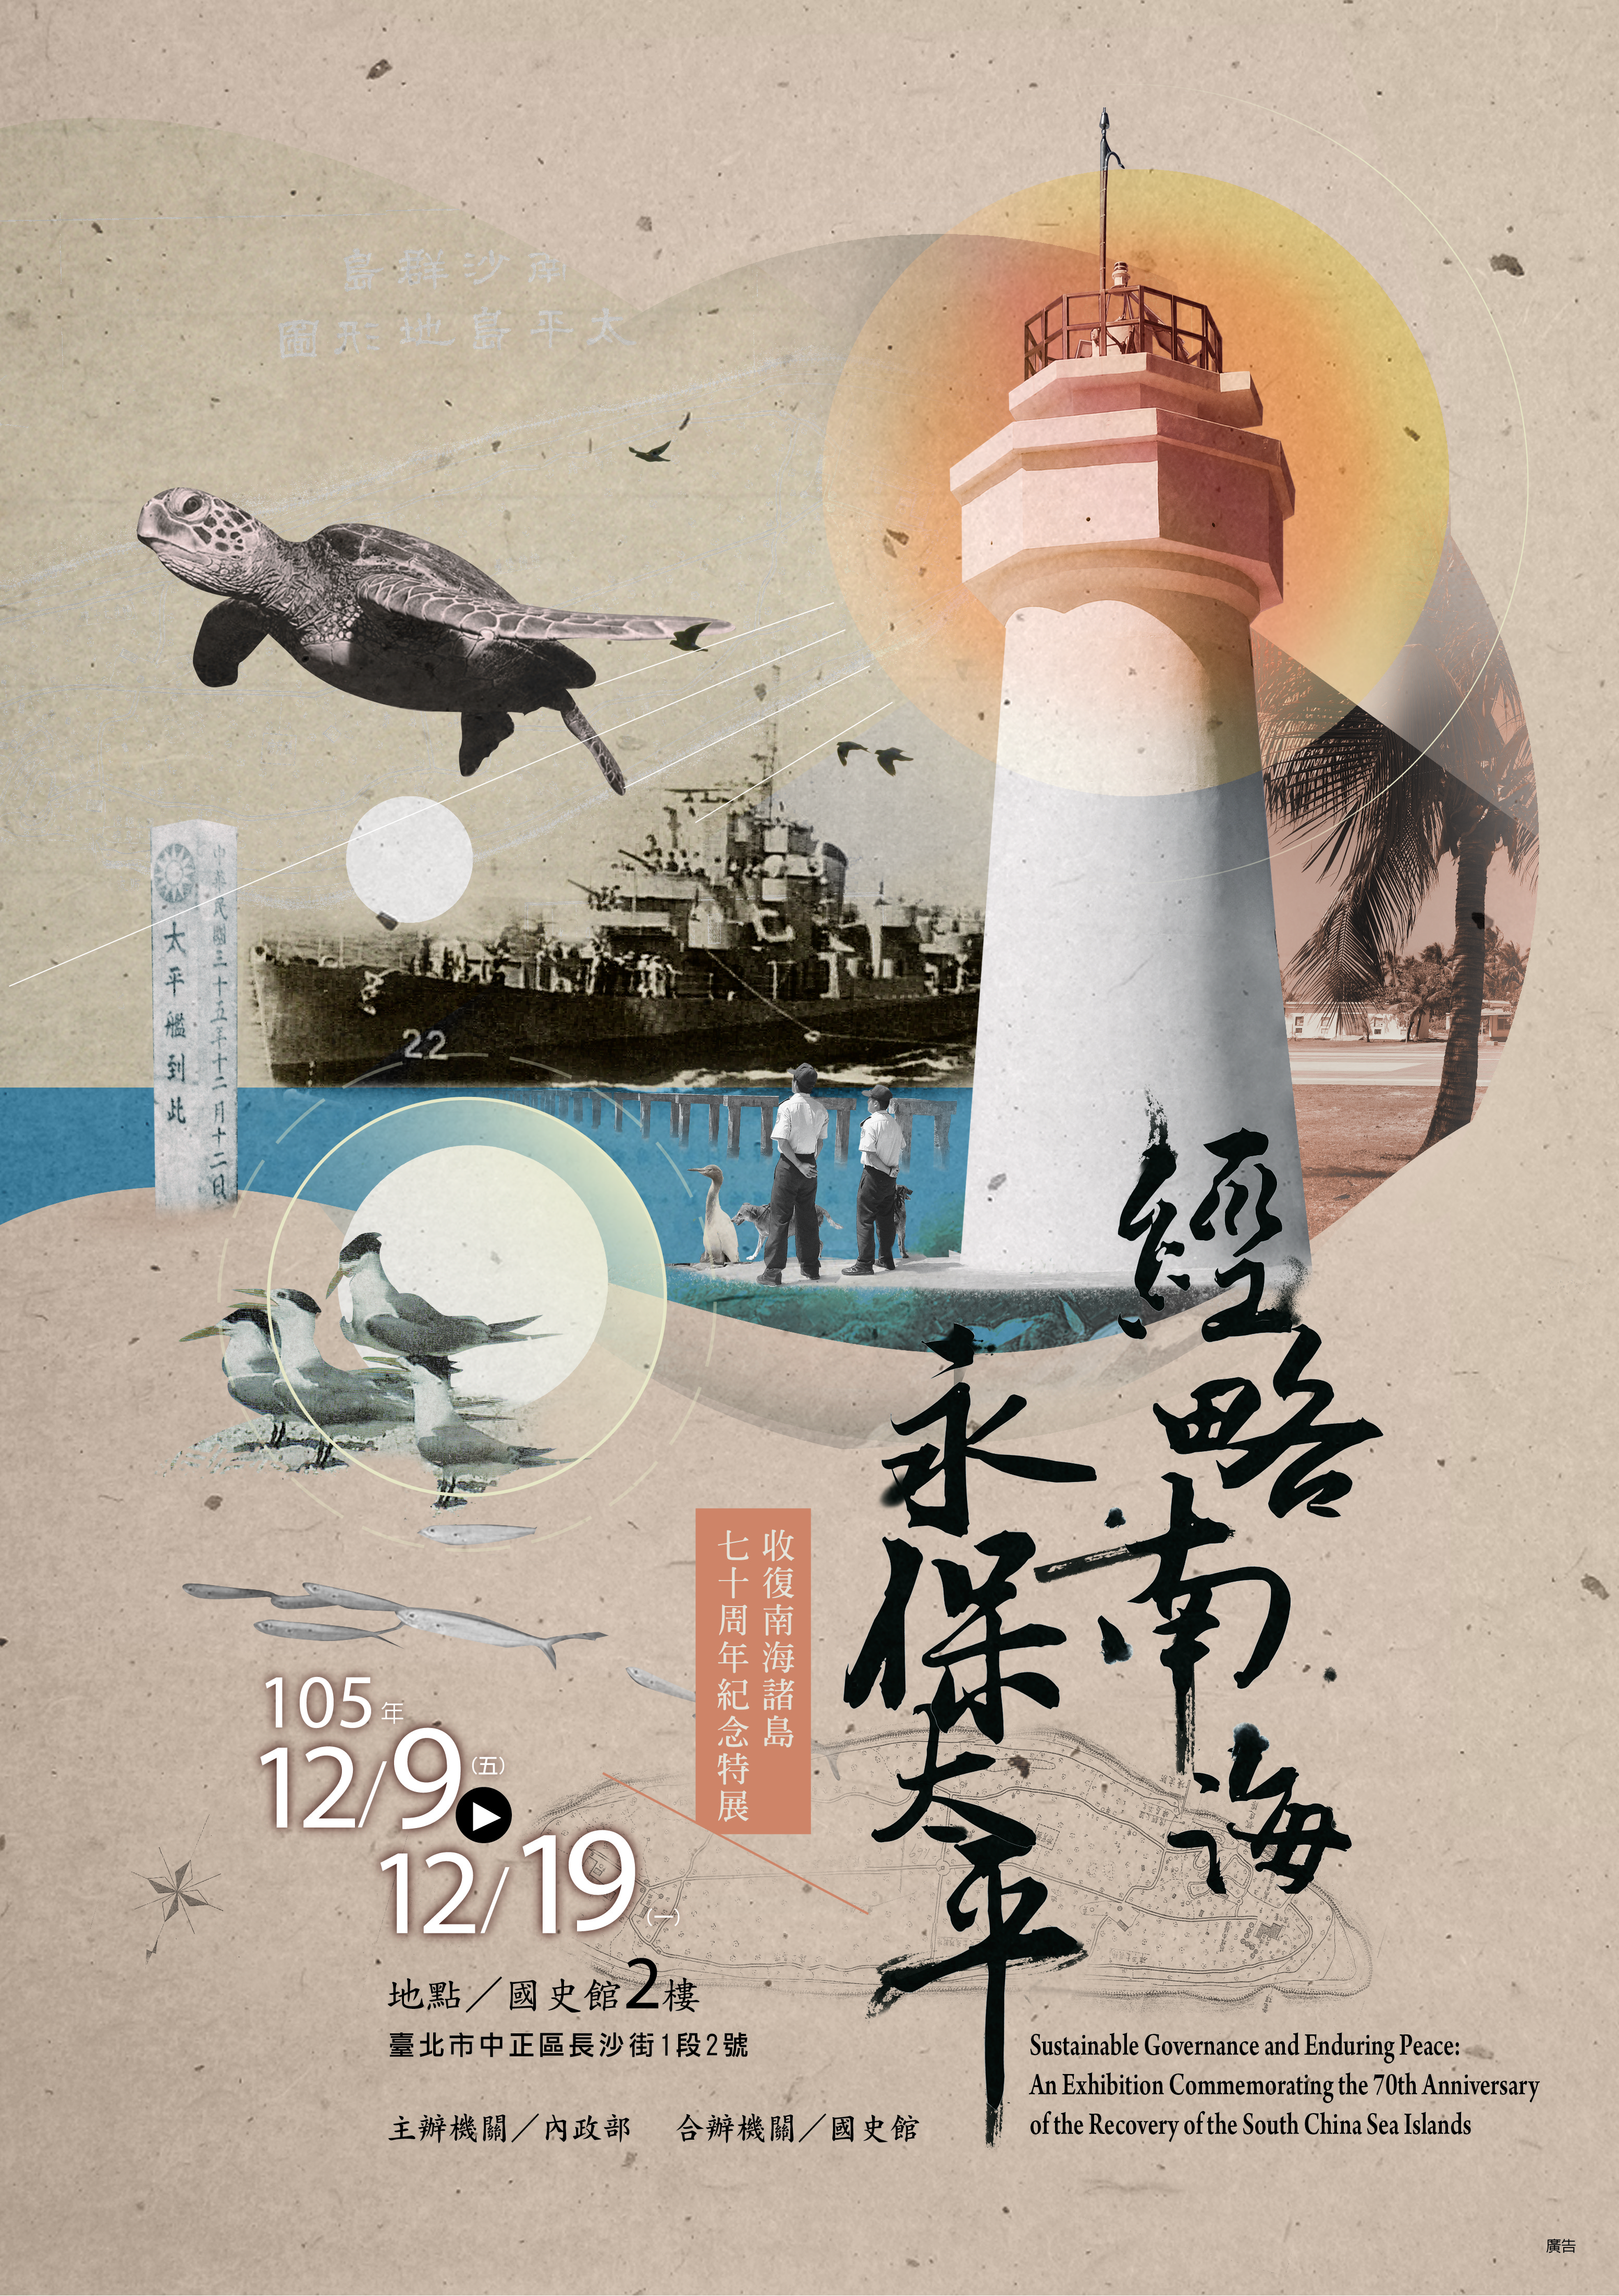 Sustainable Governance and Enduring Peace:An Exhibition Commemorating the 70th Anniversary of the Recovery of the South China Sea Islands opens December 9